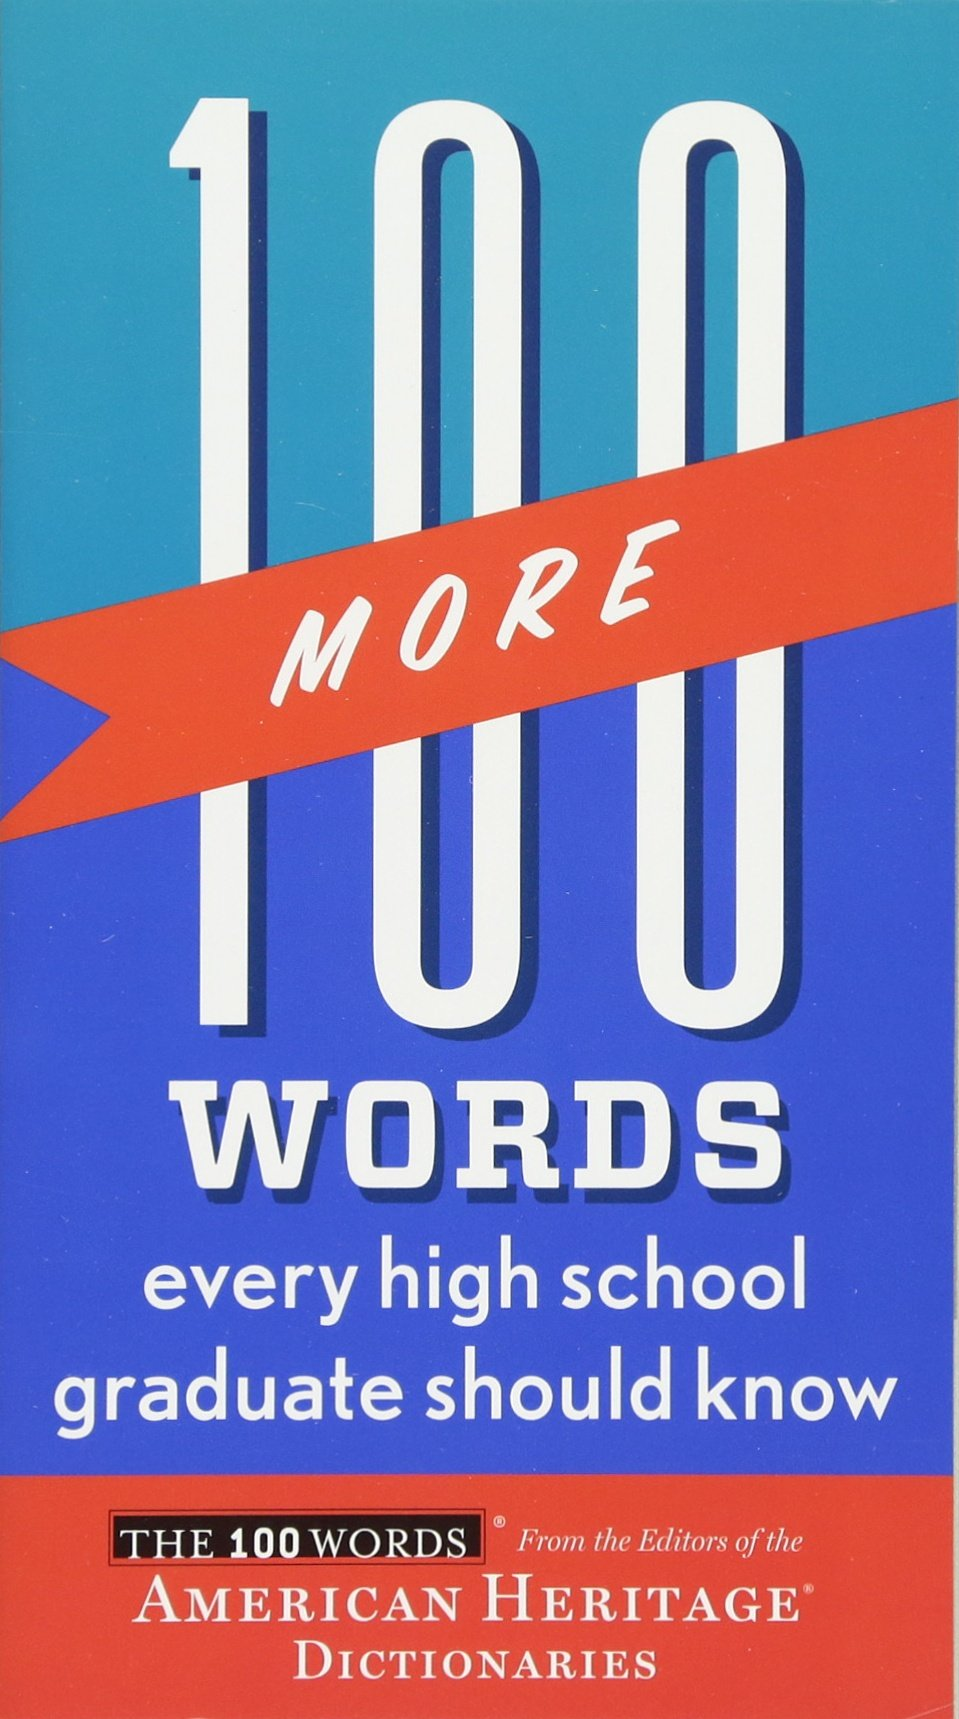 Amazon.com: 100 More Words Every High School Graduate Should Know (100 Words)  (9780544019669): Editors of the American Heritage Dictionaries: Books